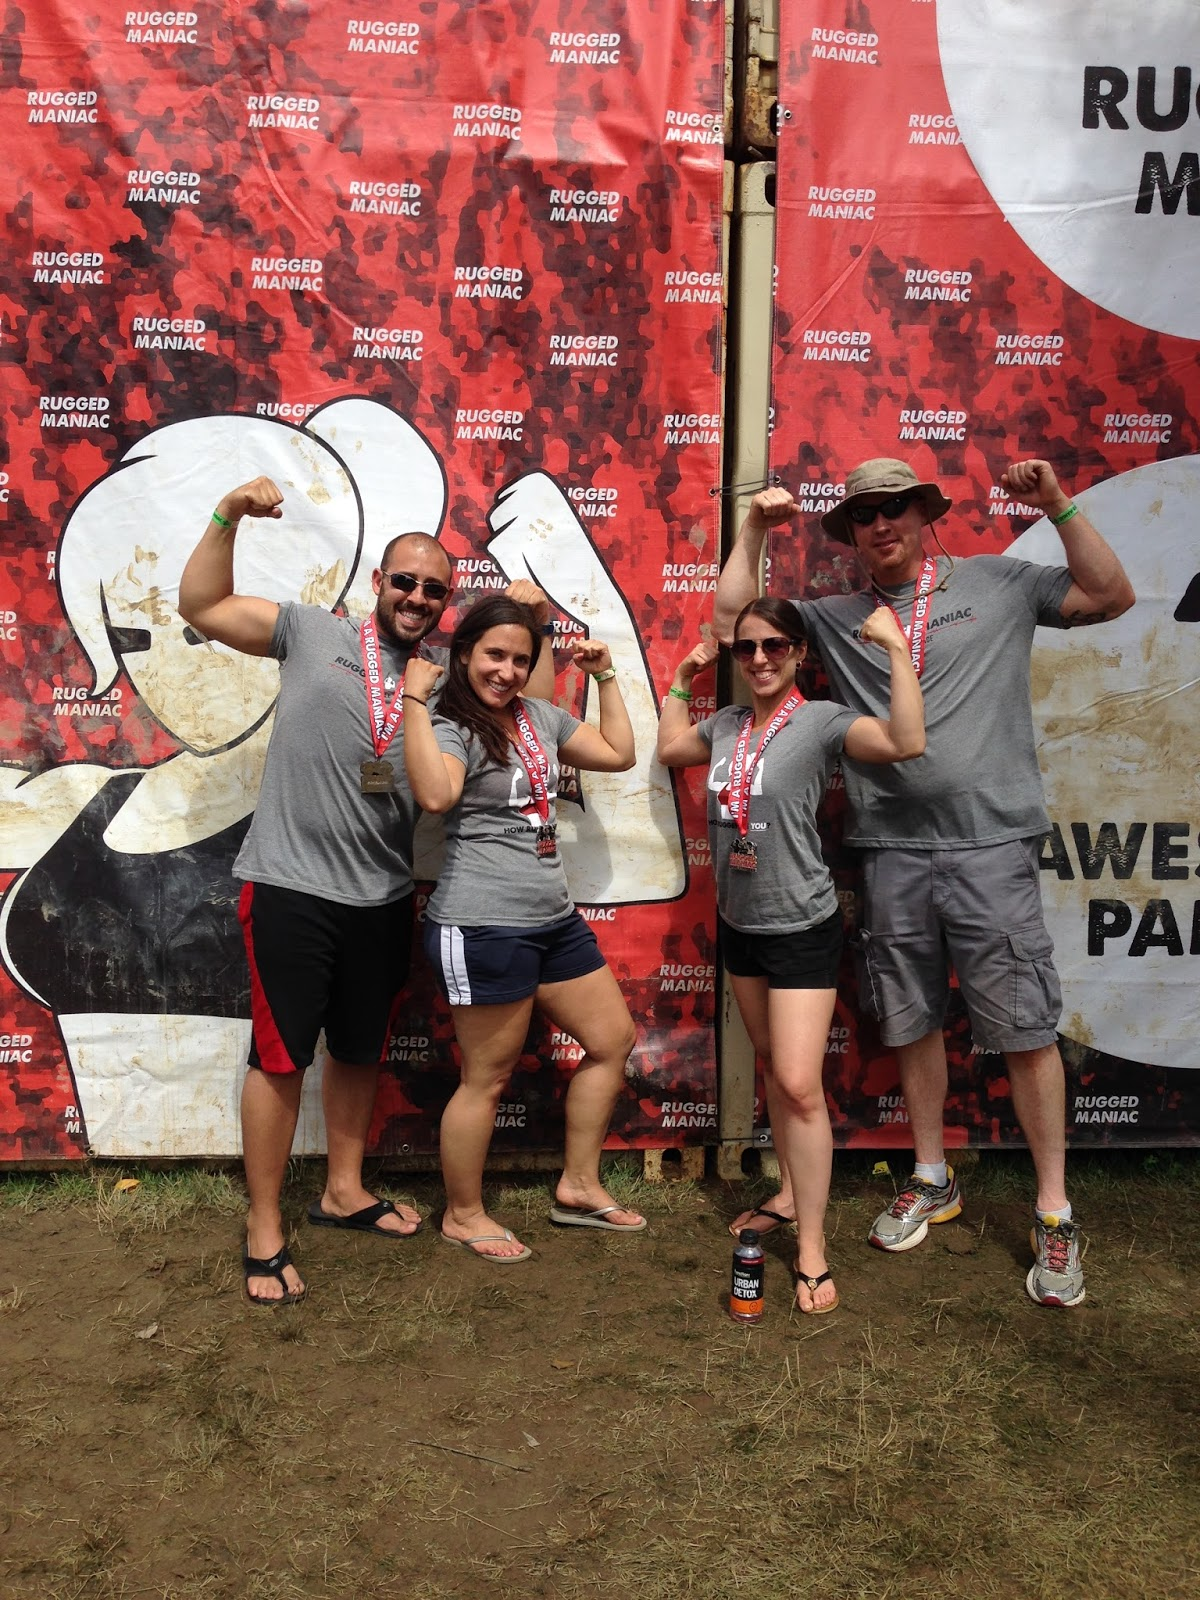 Rugged Maniac Swag